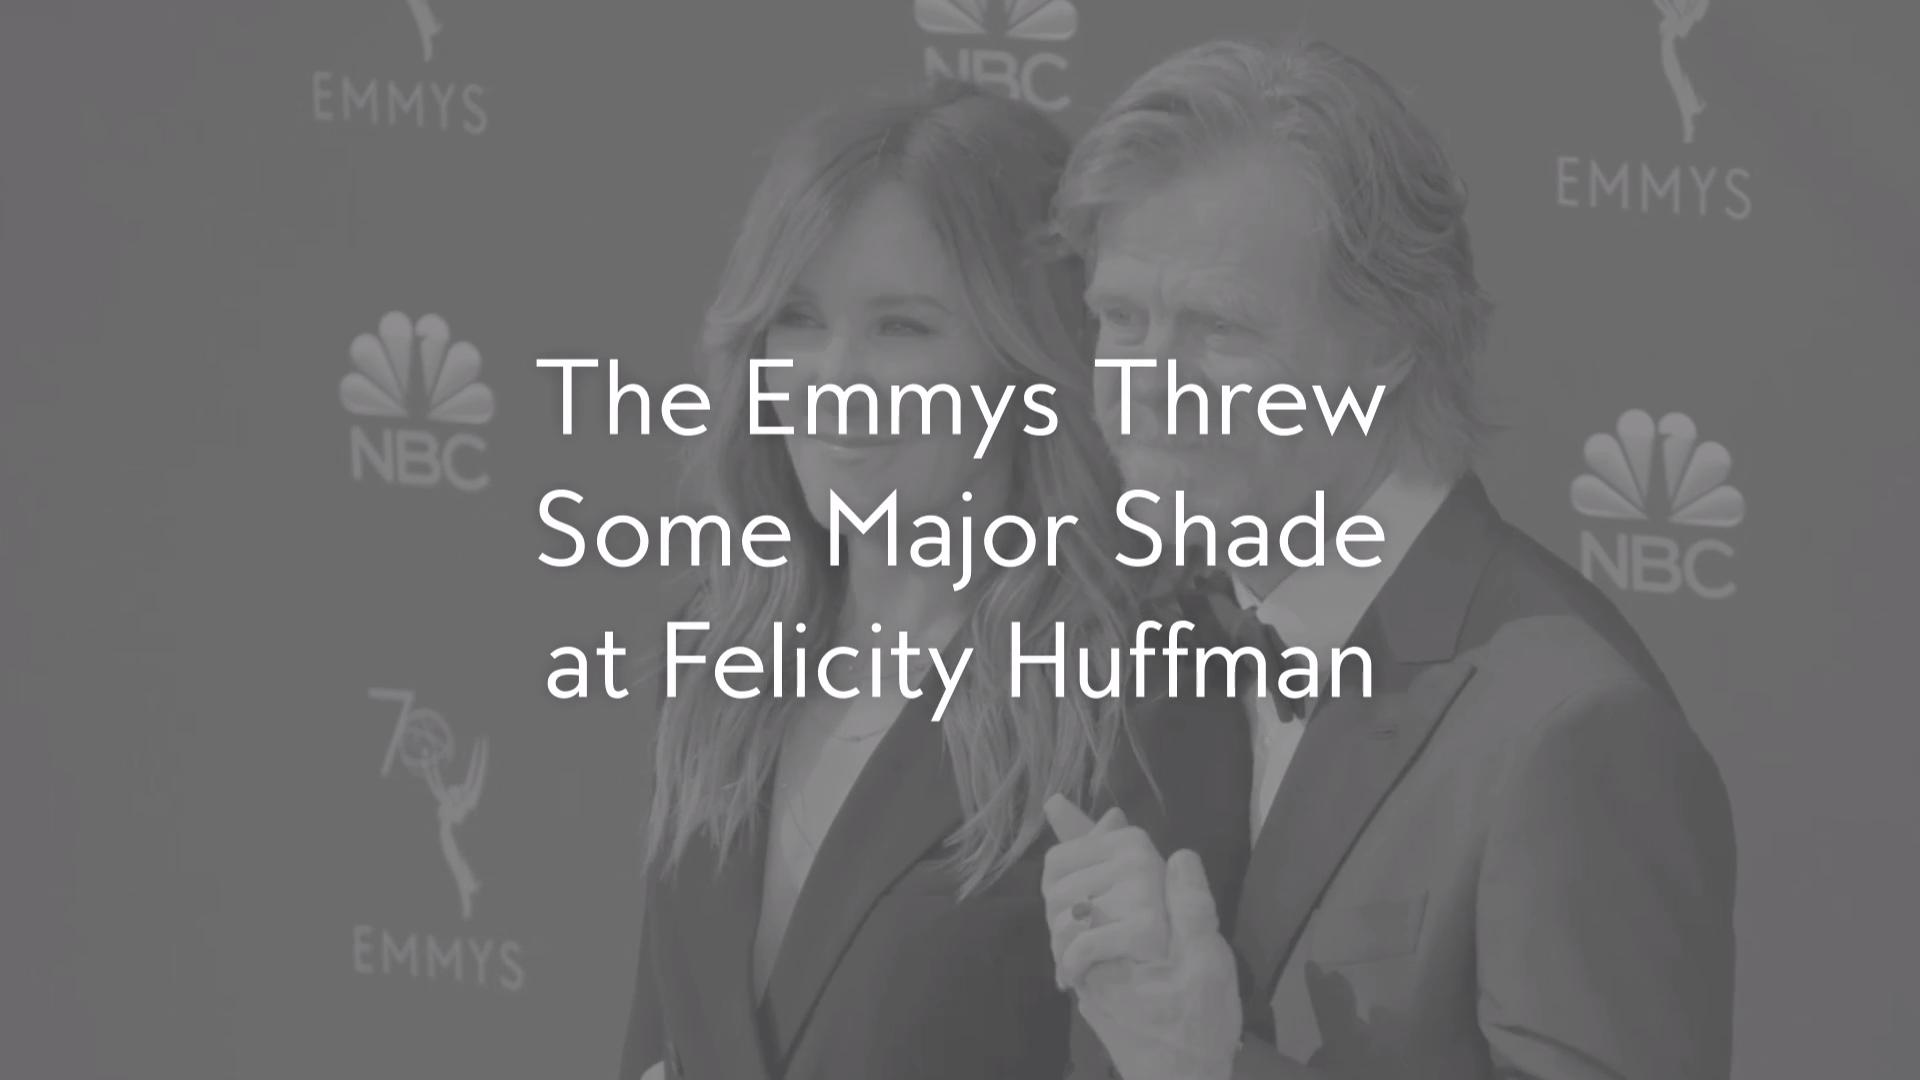 The Emmys Threw Some Major Shade at Felicity Huffman